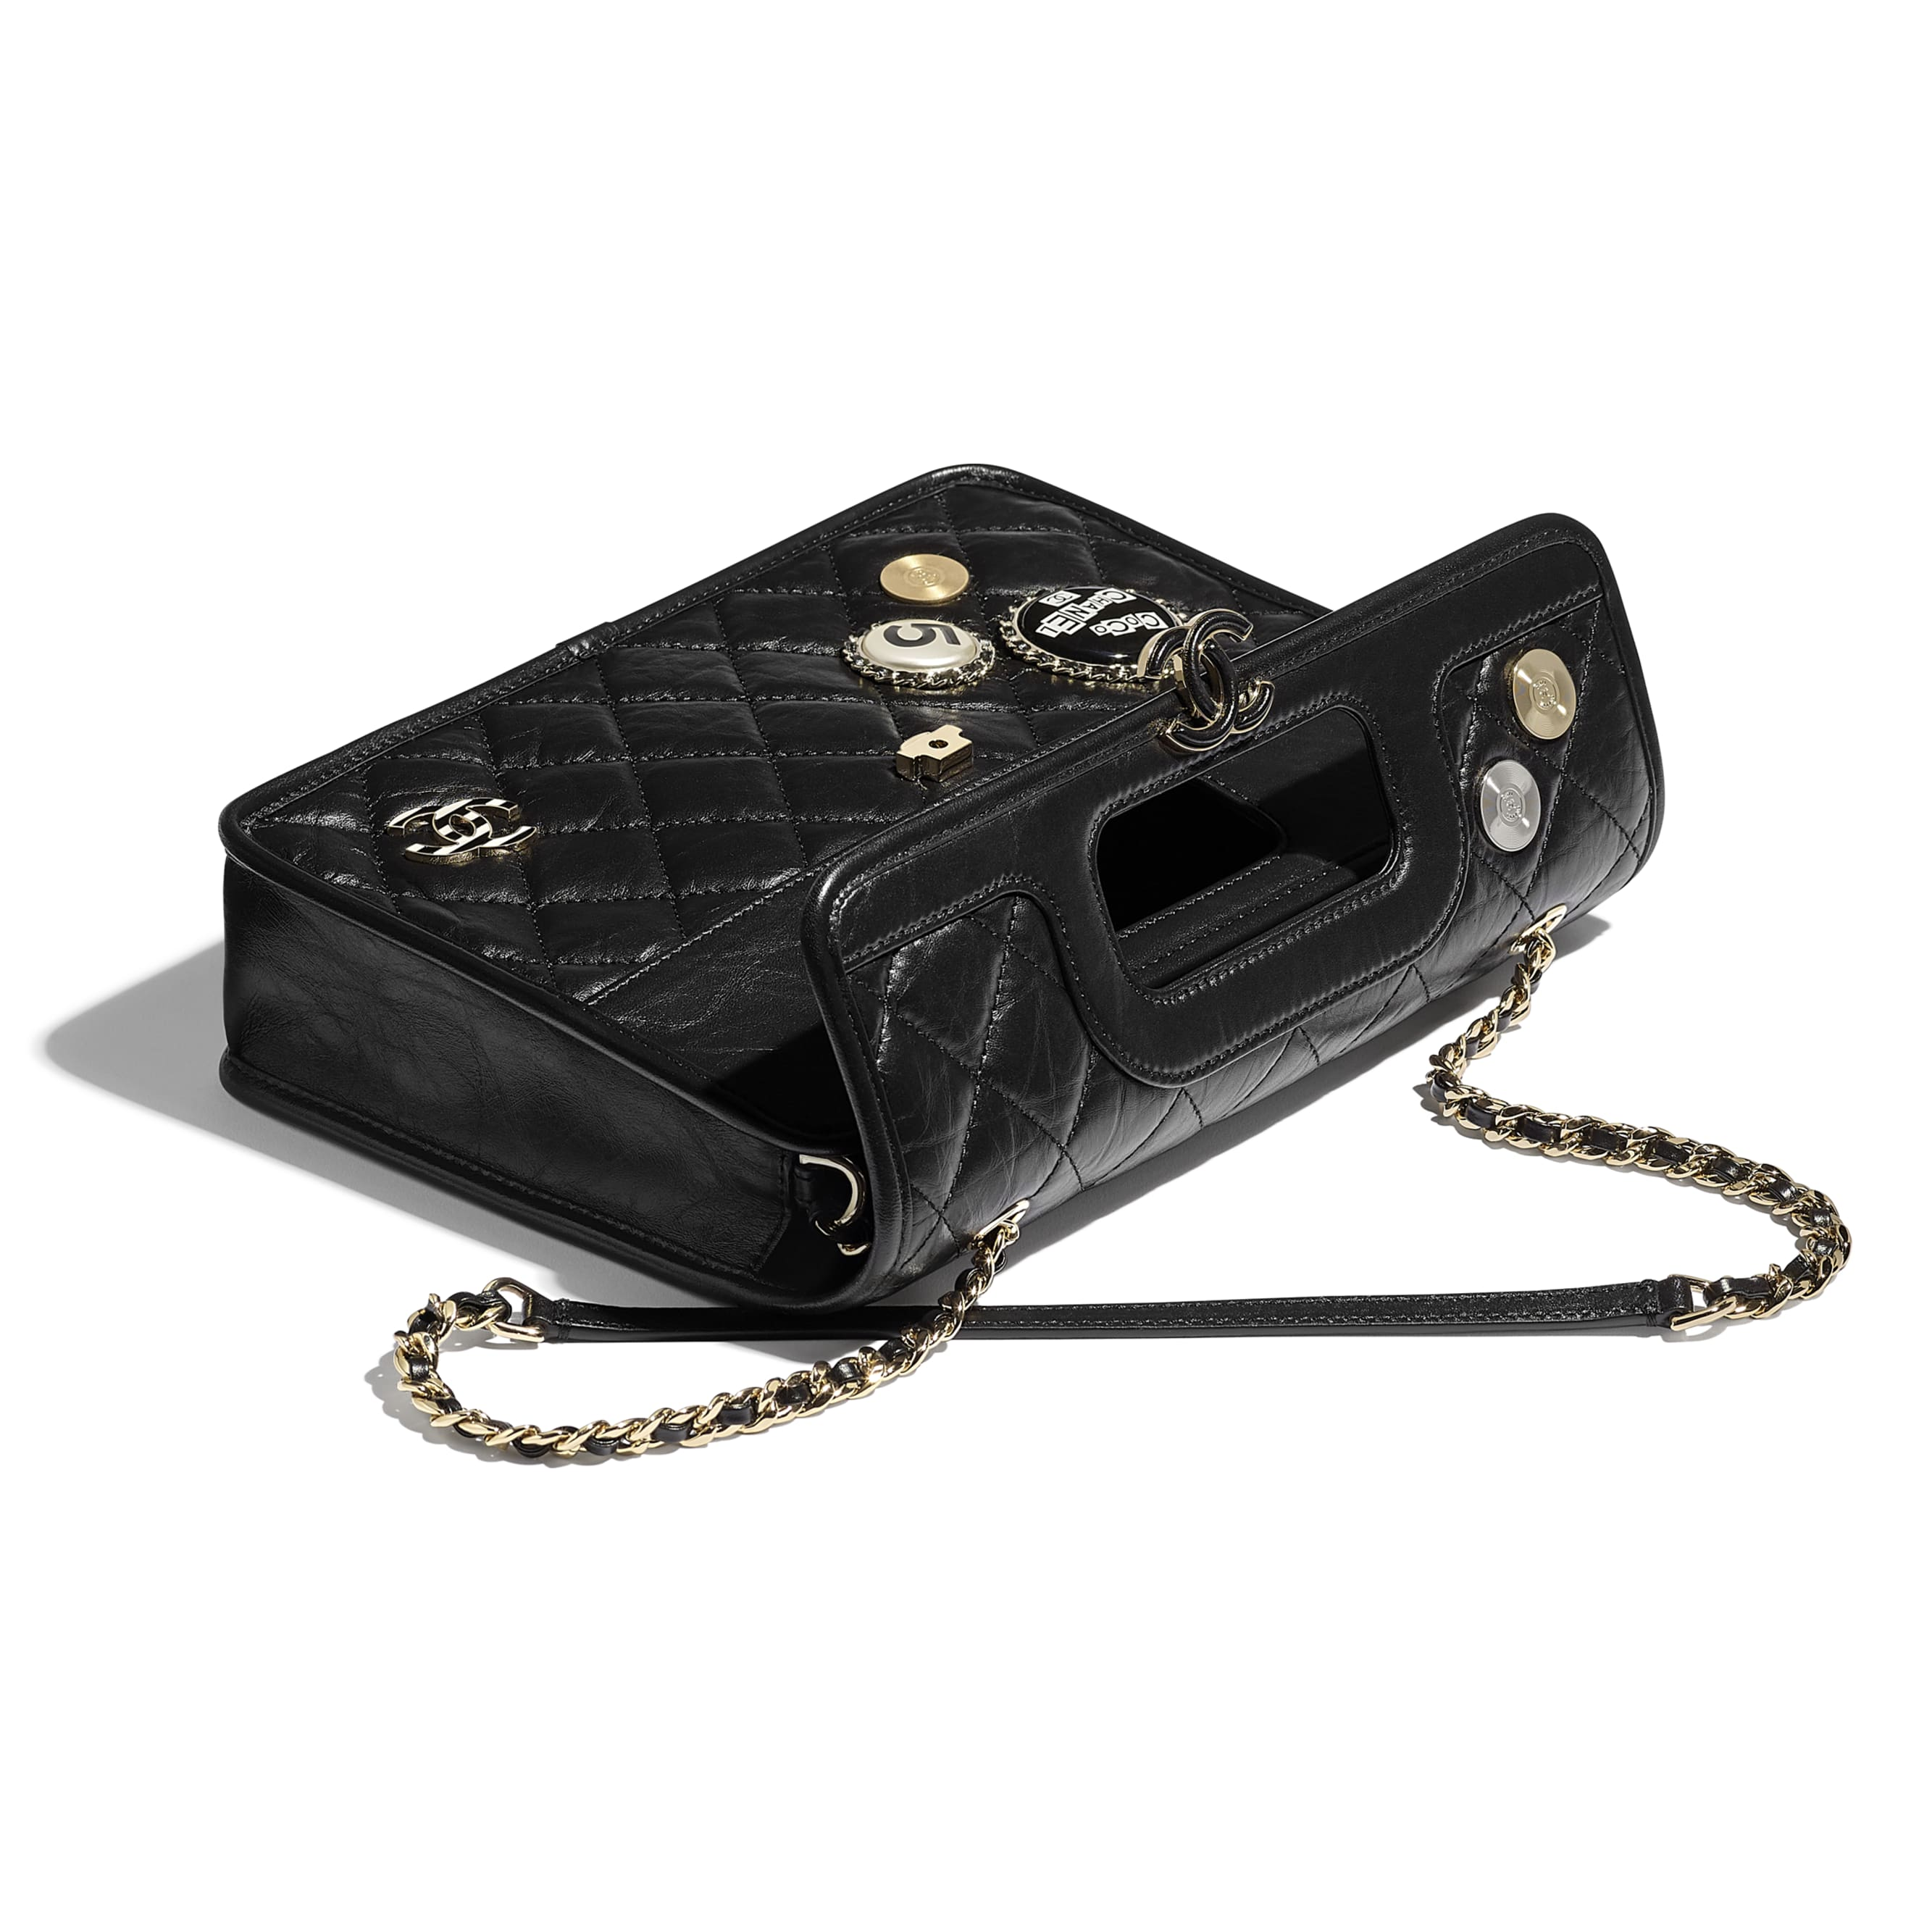 Flap Bag - Black - Aged Calfskin, Charms & Gold Metal - Extra view - see standard sized version